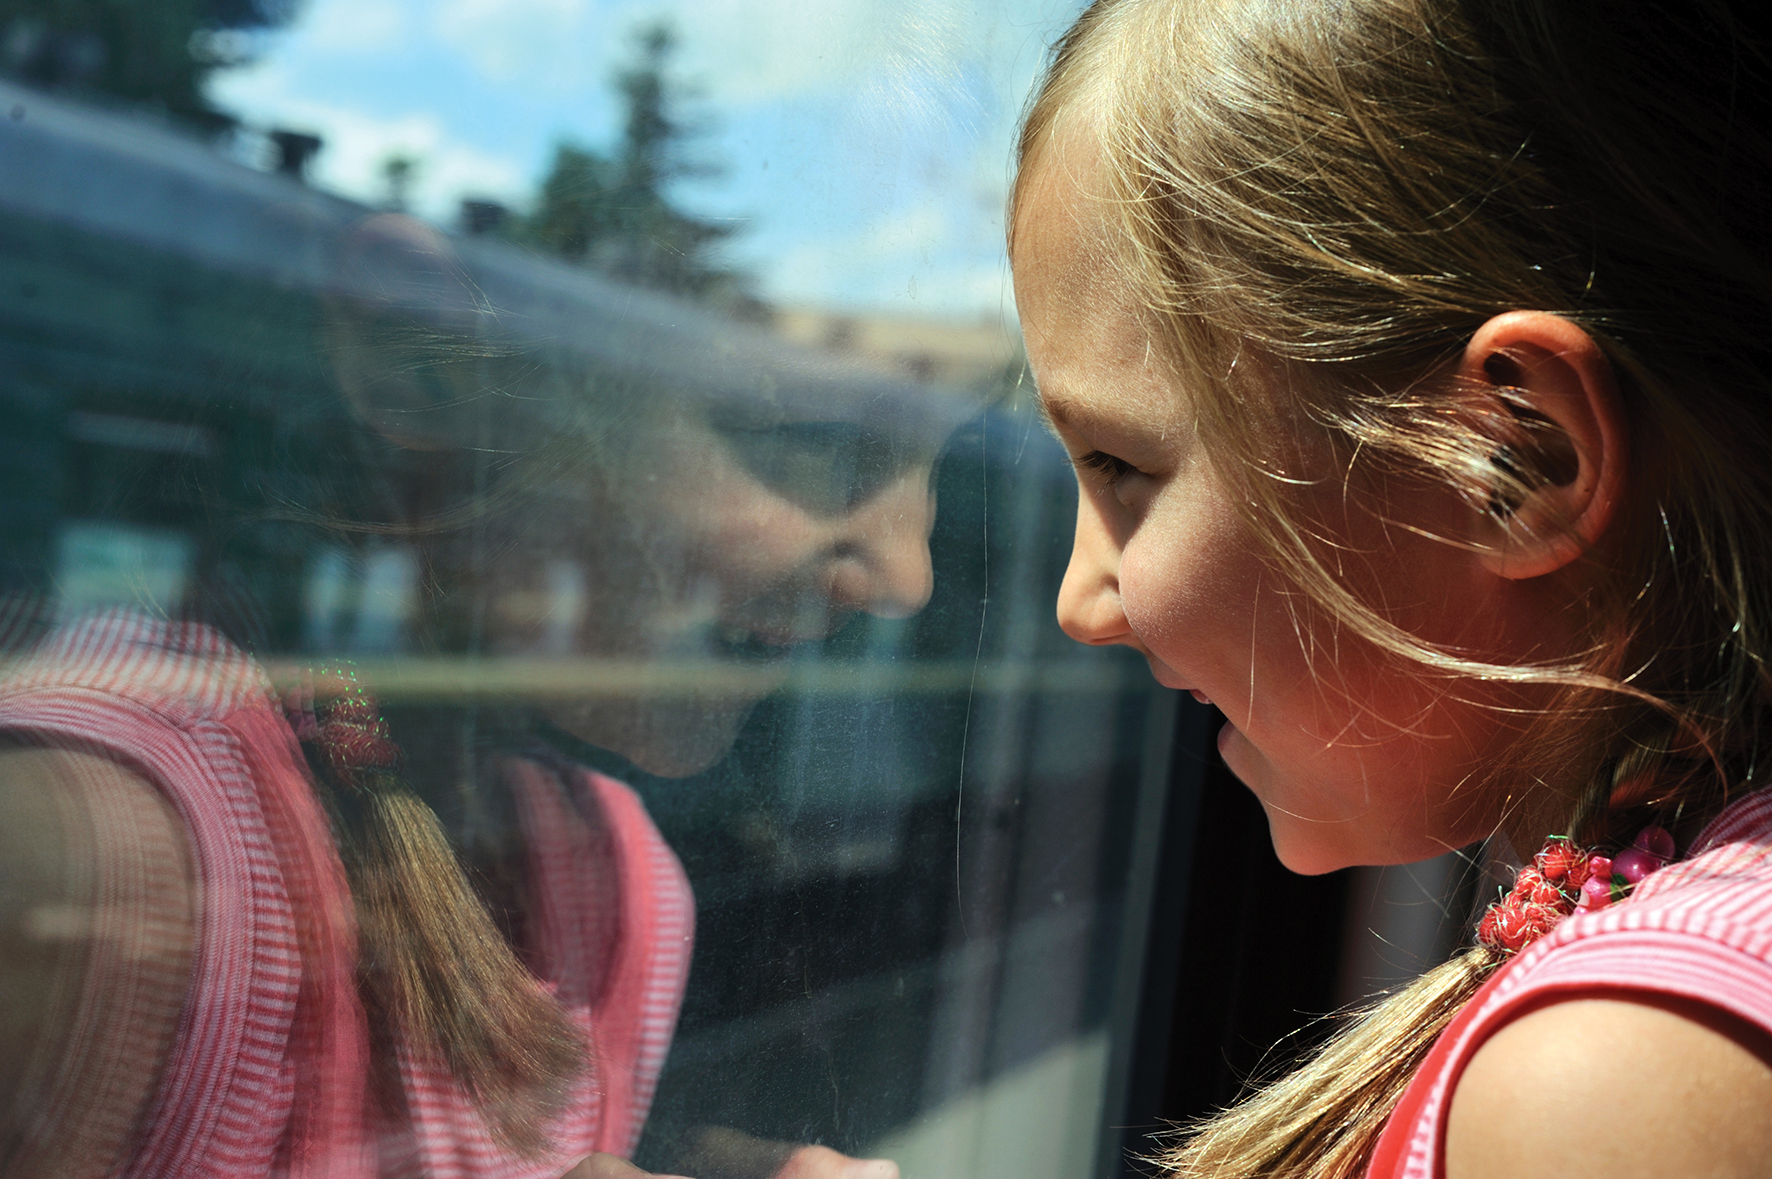 girl train window